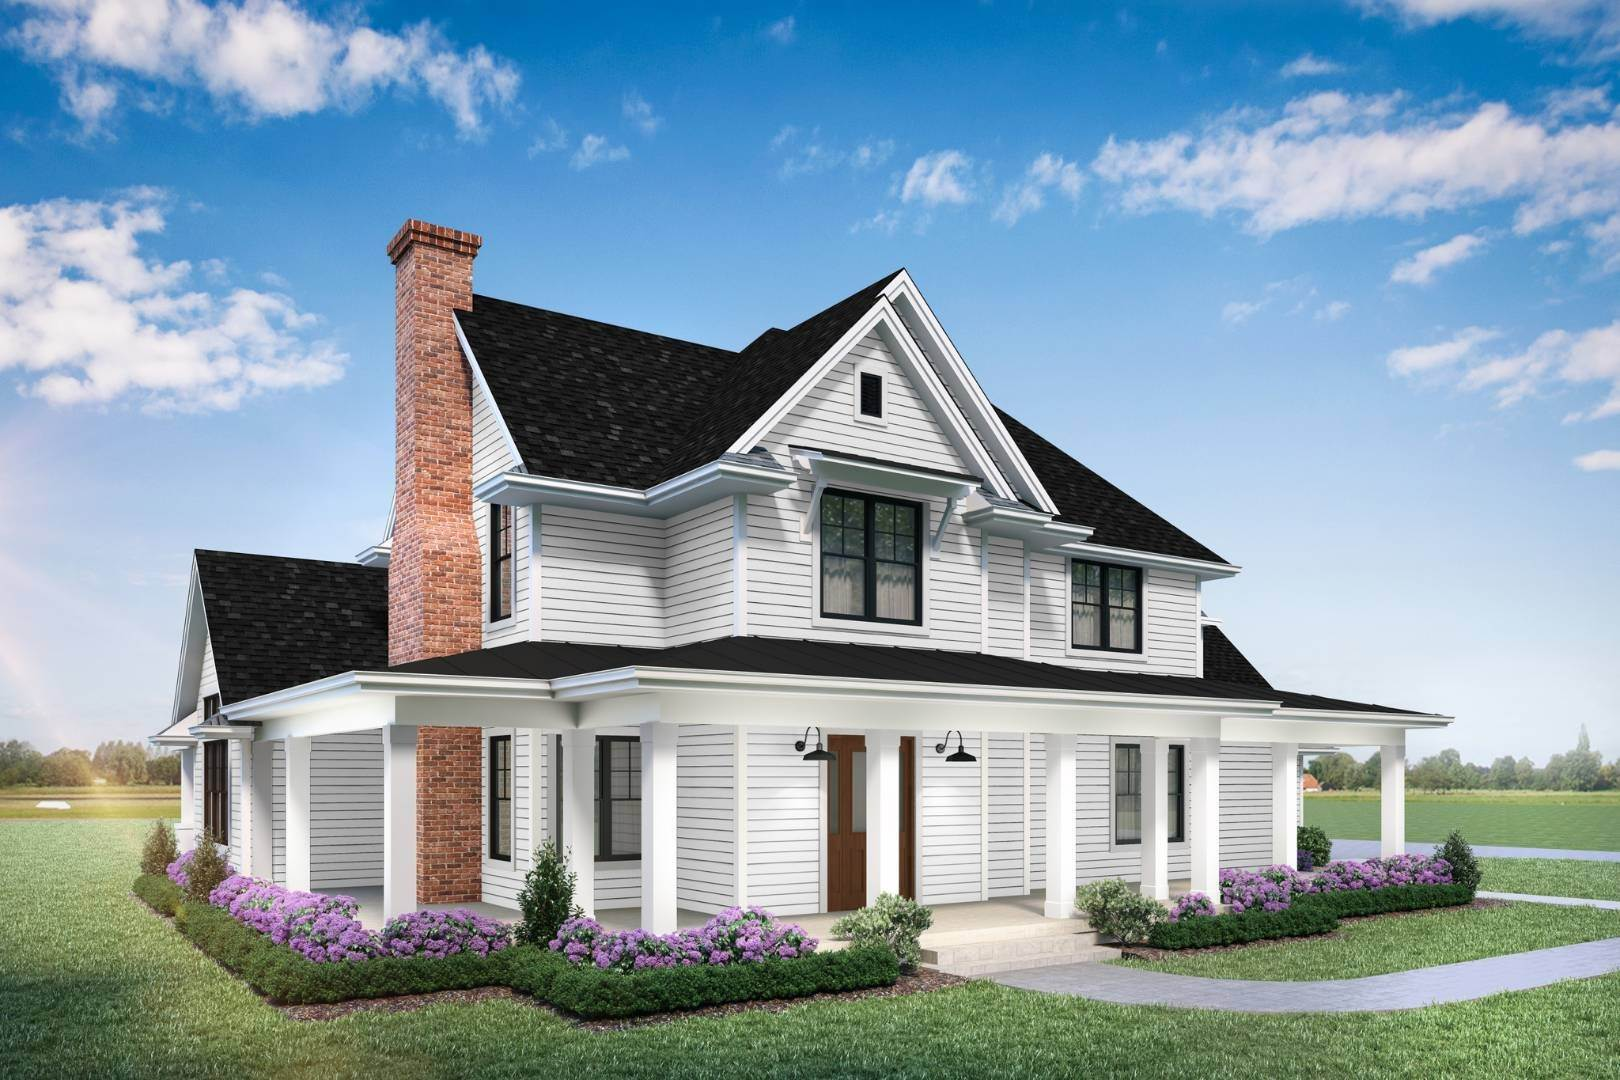 Single Family Home for Sale at New Construction In Riverhead With Sublime Farmviews 782 Reeves Ave, Riverhead, NY 11901